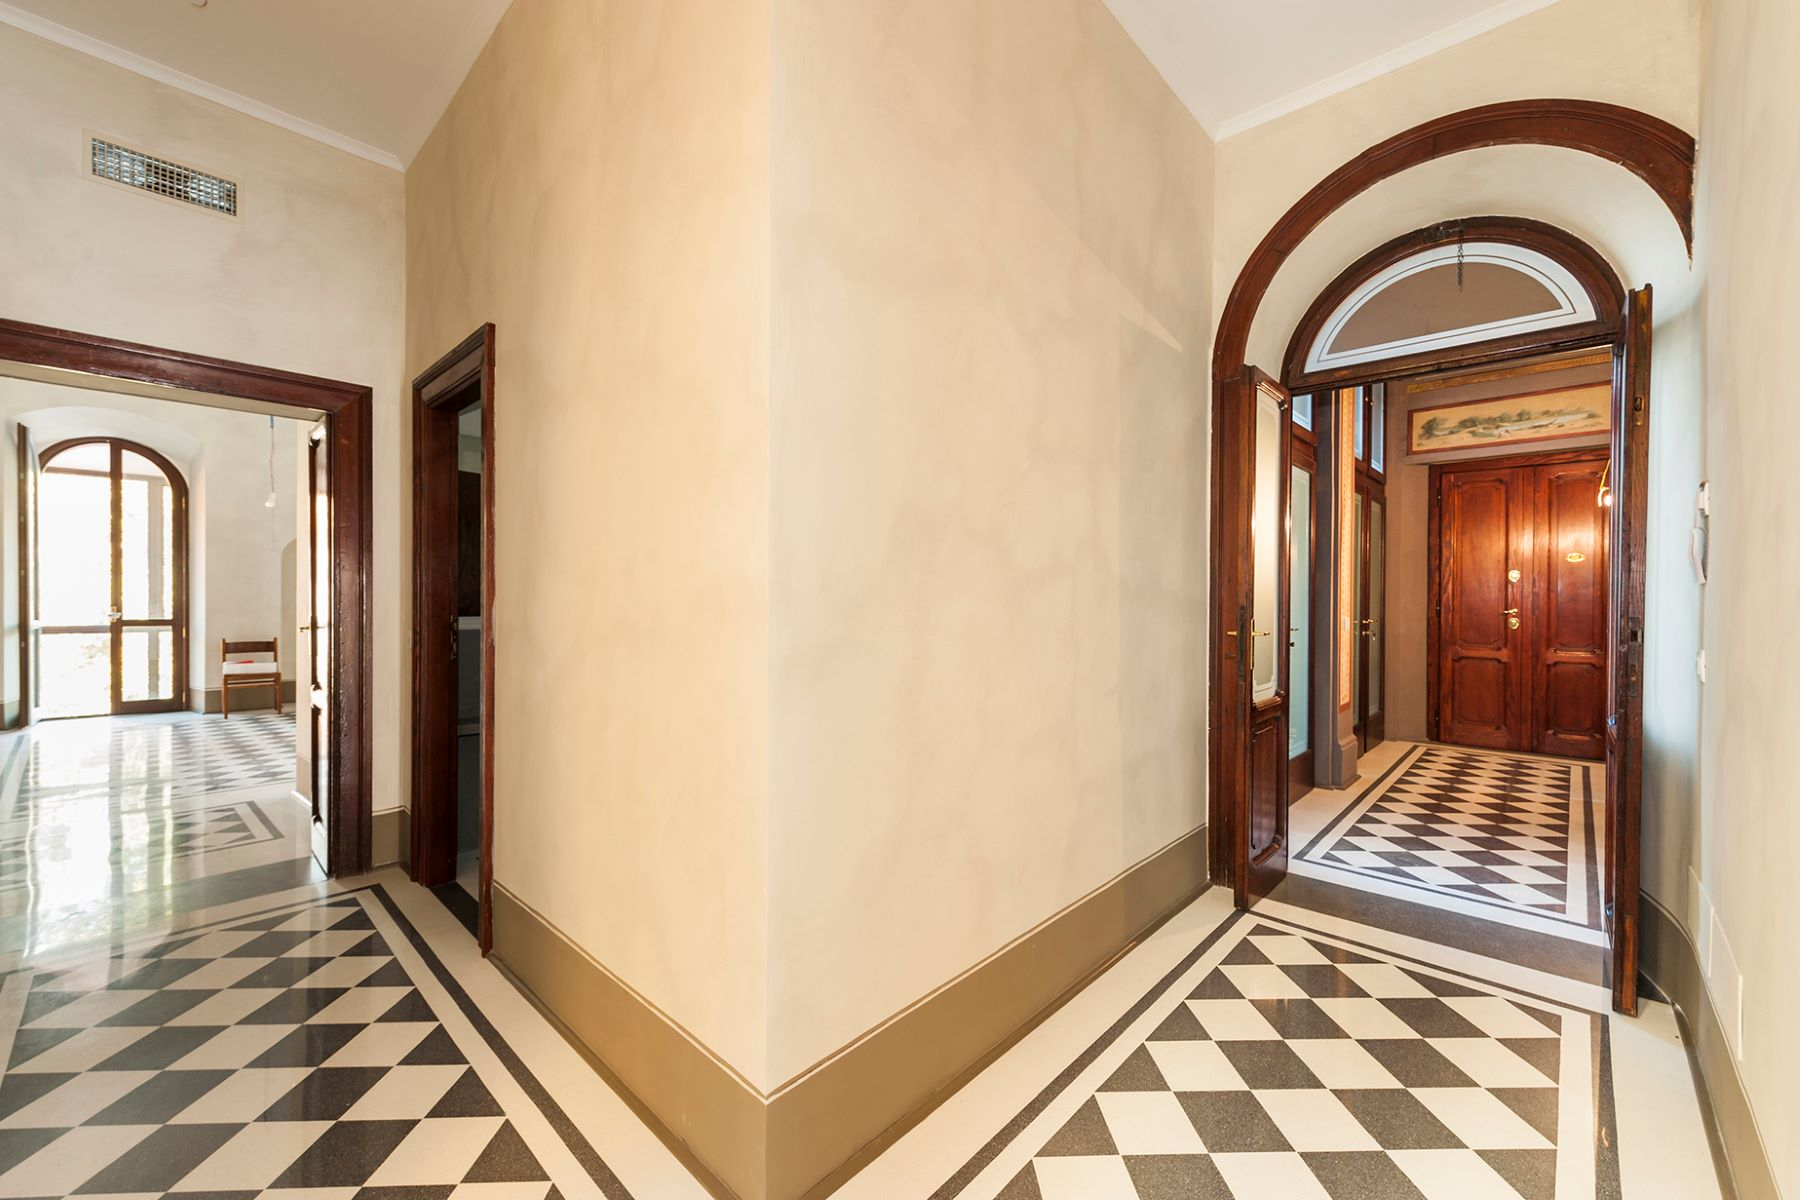 Additional photo for property listing at Magnificent apartment overlooking Piazza di Spagna Rome, Rome Italy